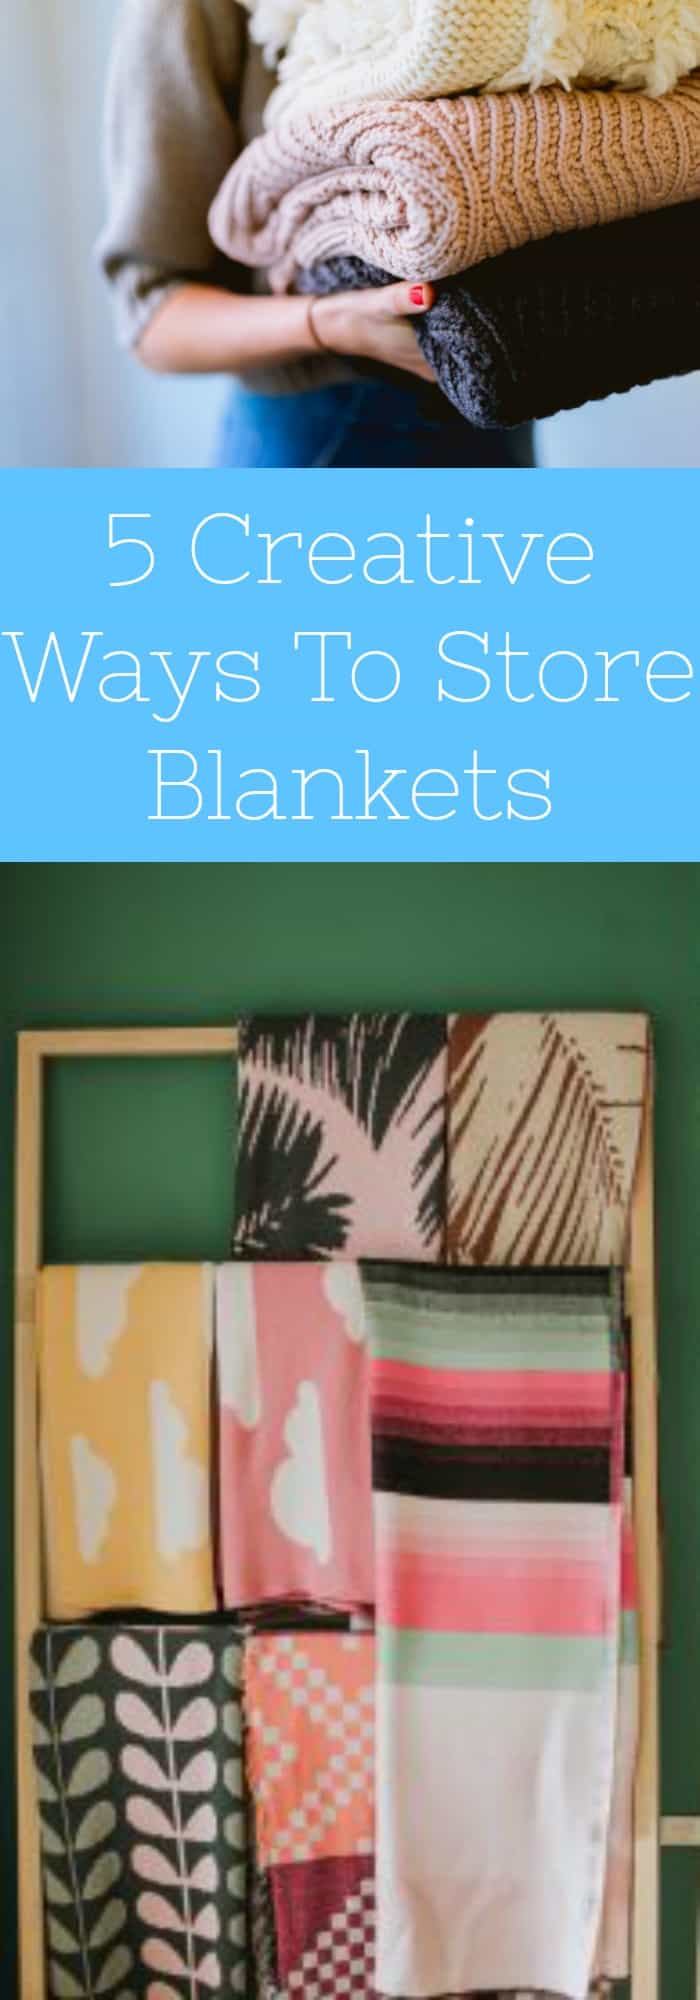 5 Creative Ways to Store Blankets